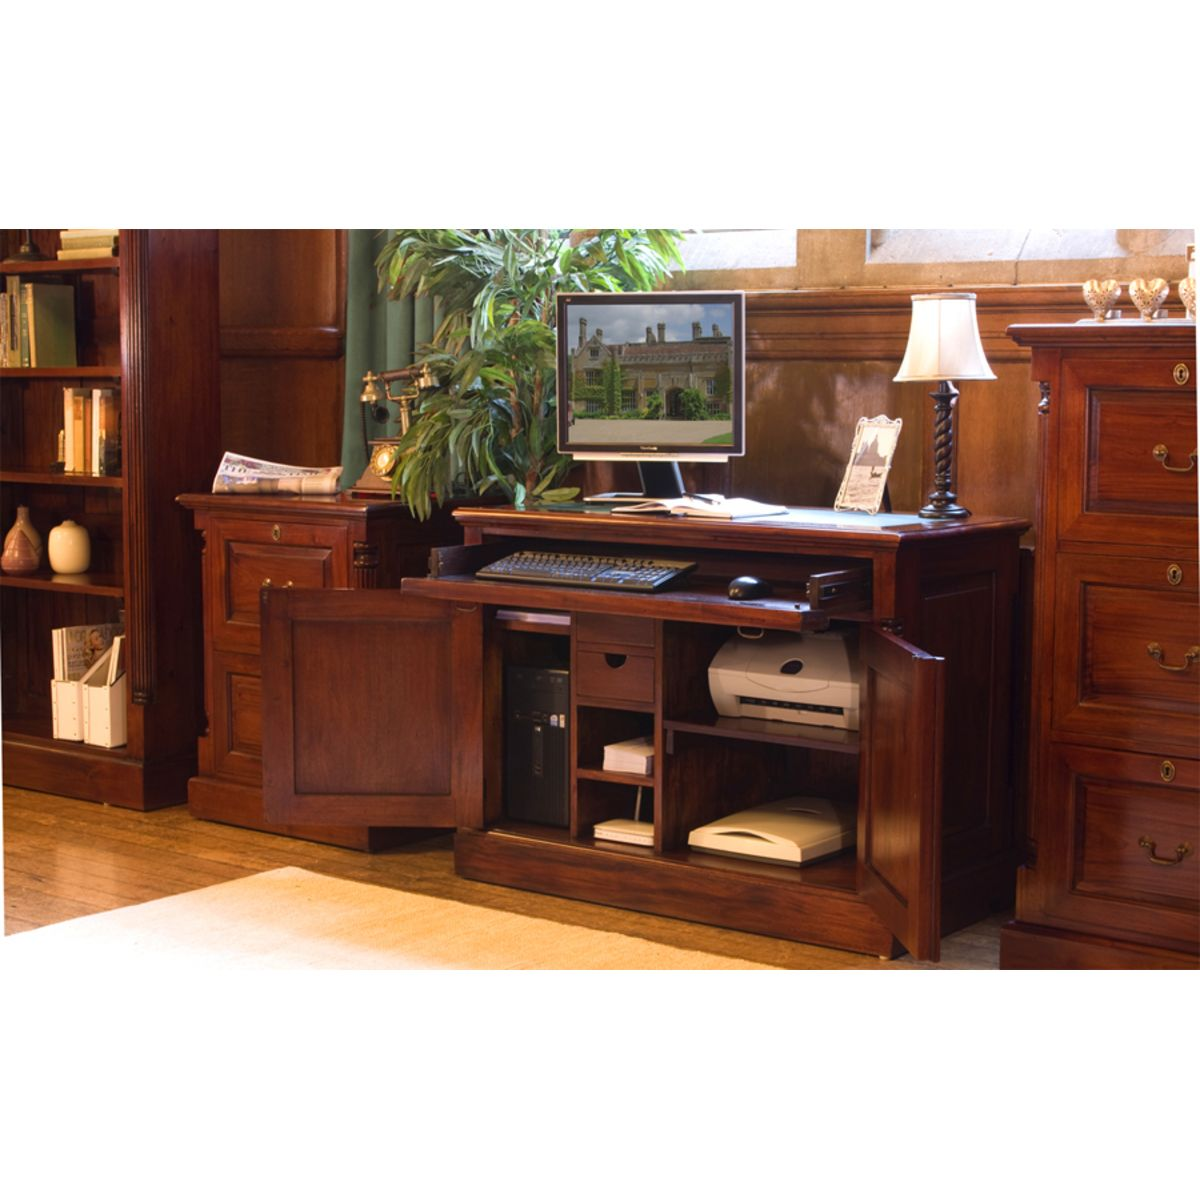 Office furniture shop innovation for Office furniture stores